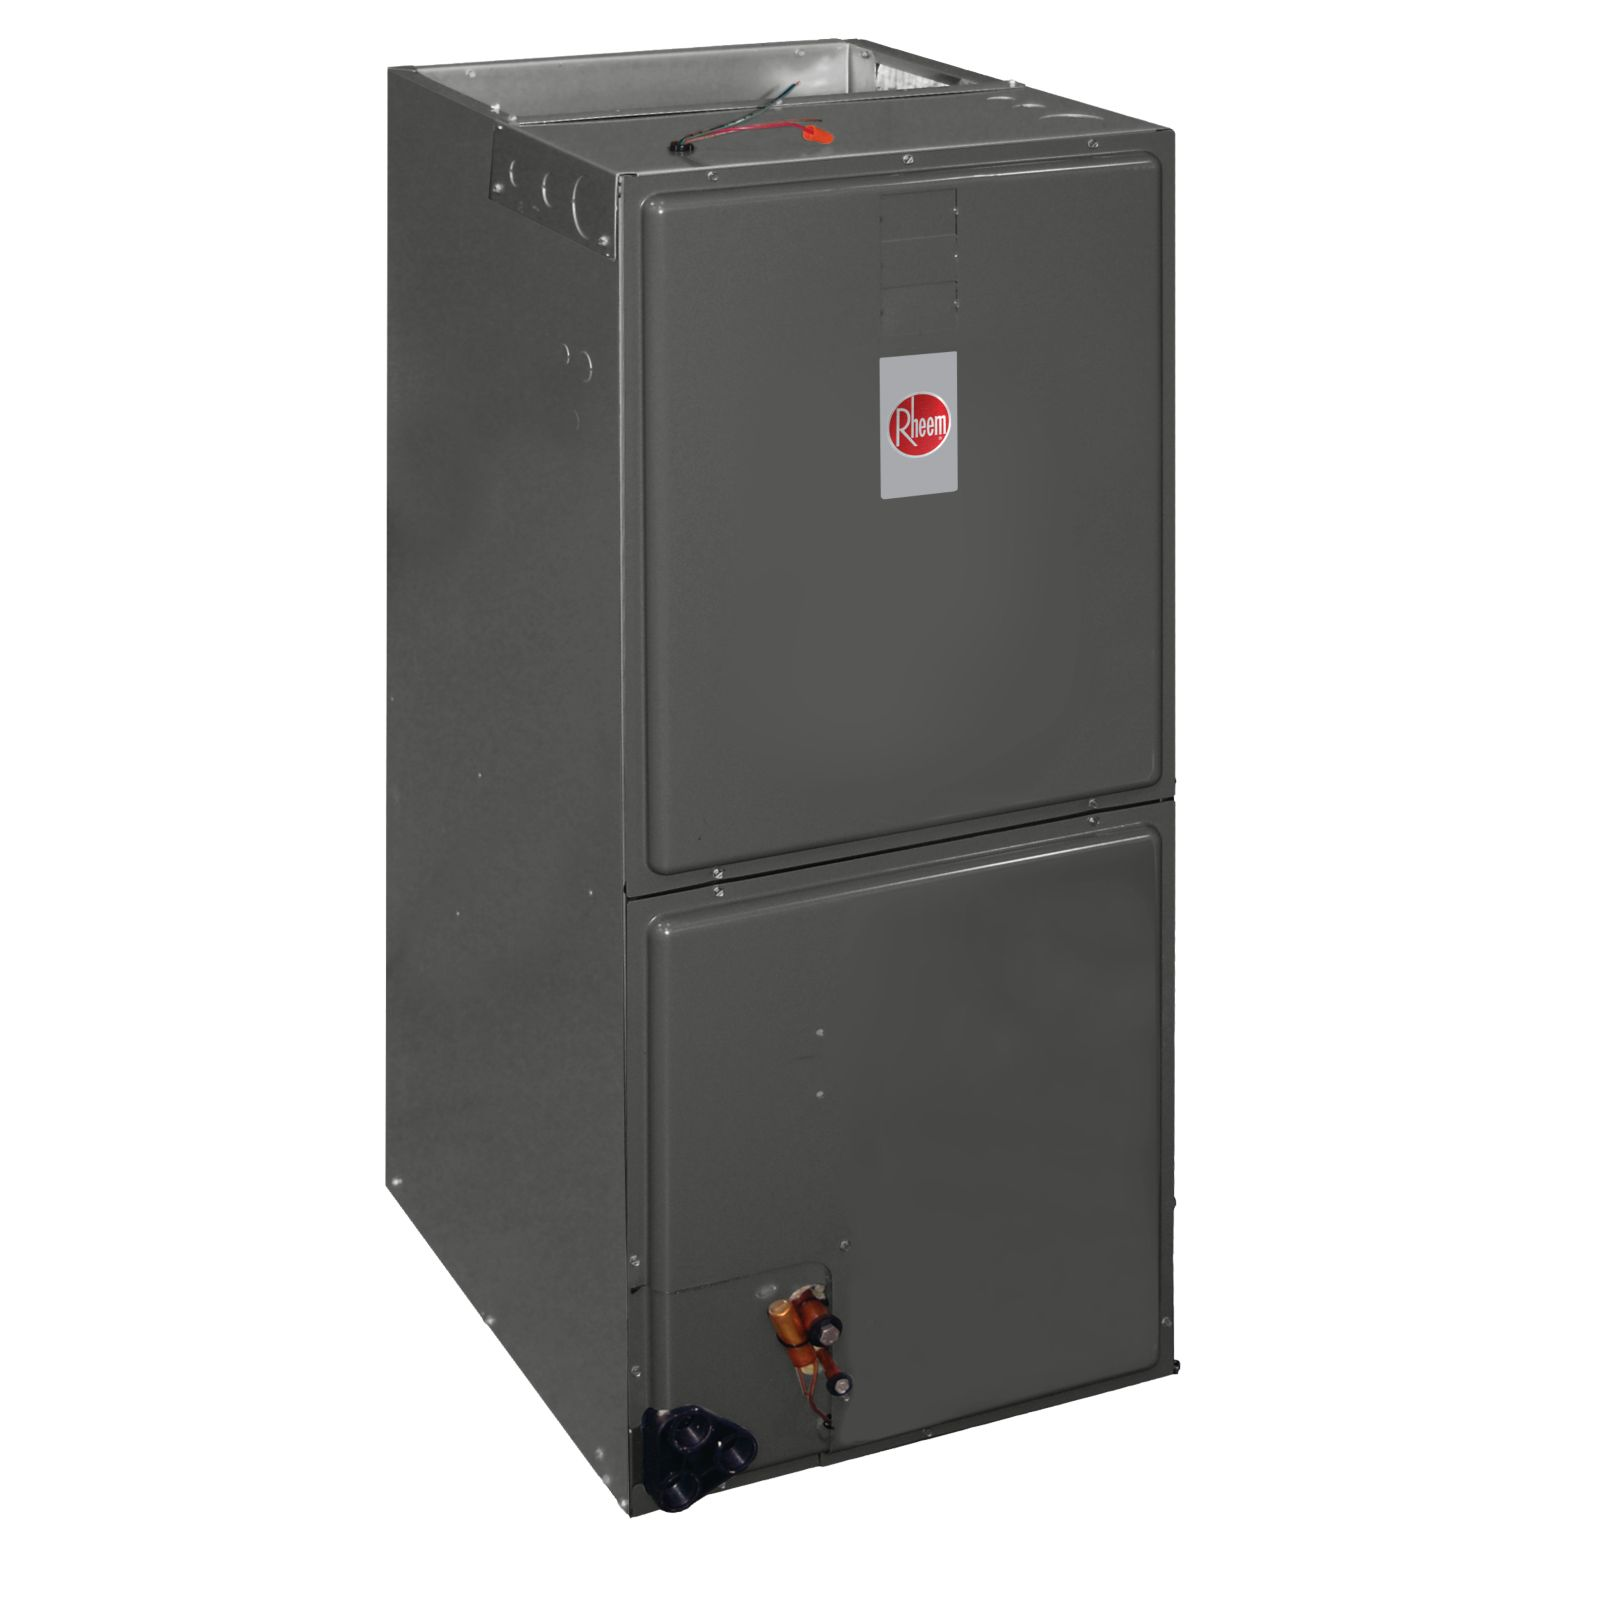 Rheem RHKL-HM6024JA - Premium Series 5 Ton Multiposition Air Handler - Up to 16 SEER - R410A - Quiet ECM Motor